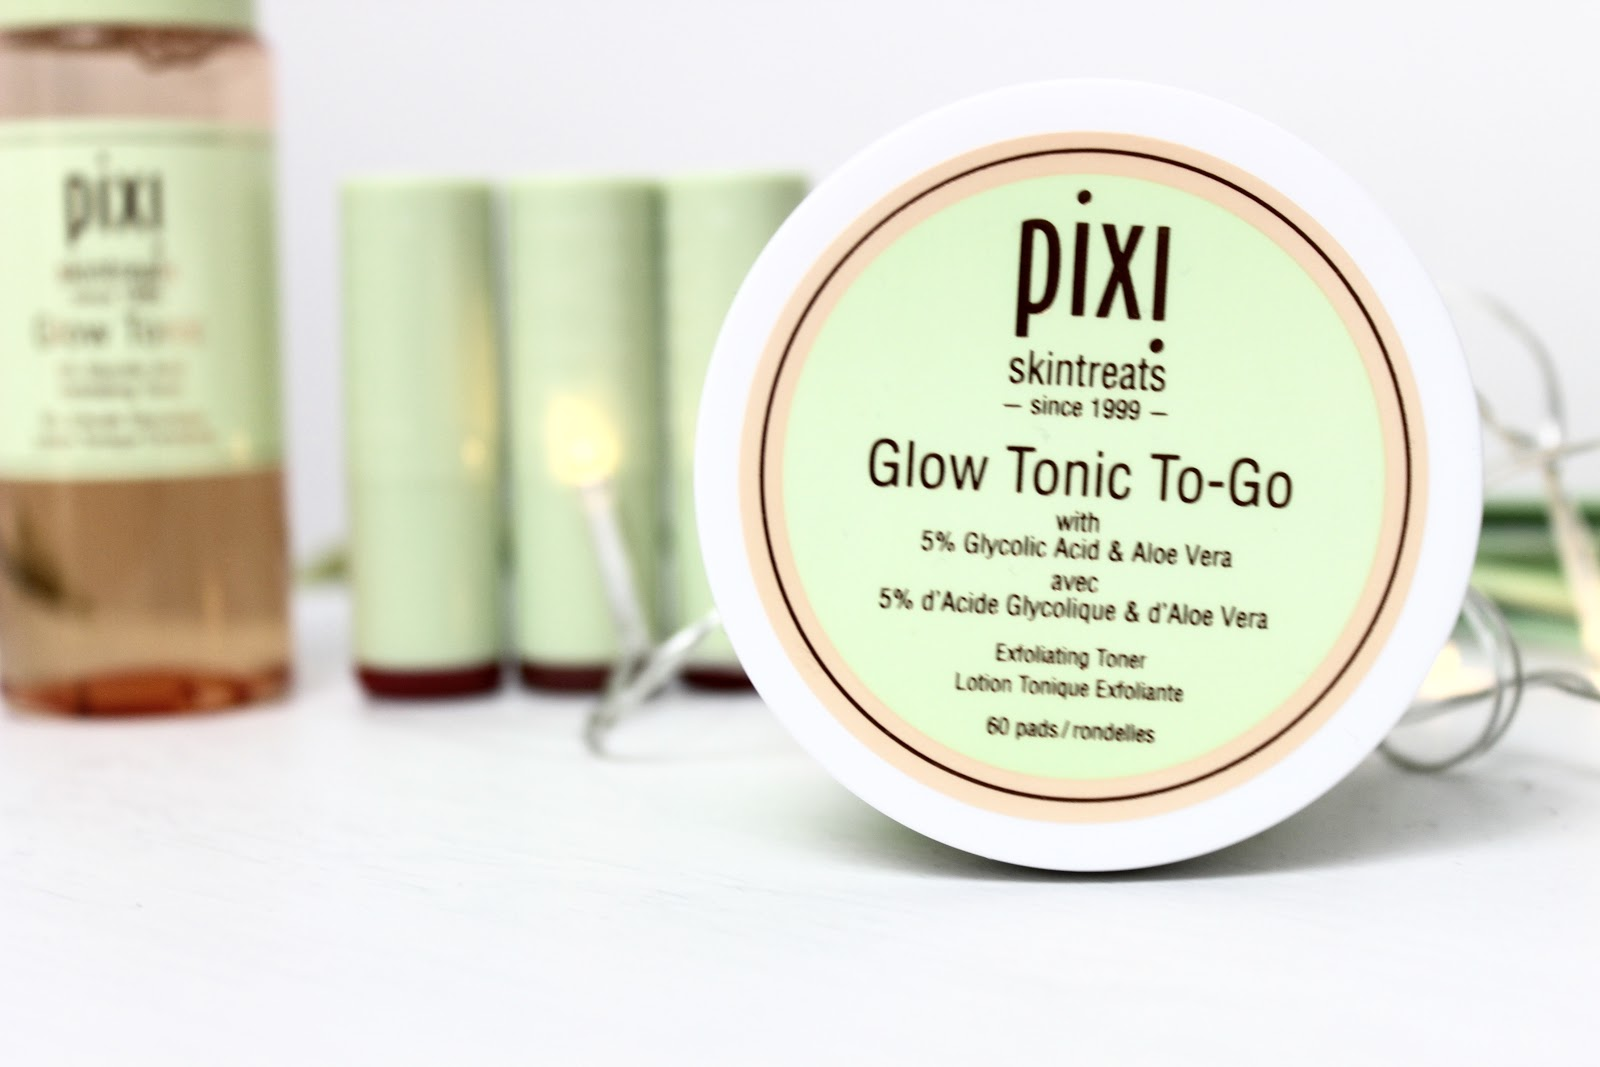 Pixi Glow Tonic To-Go!